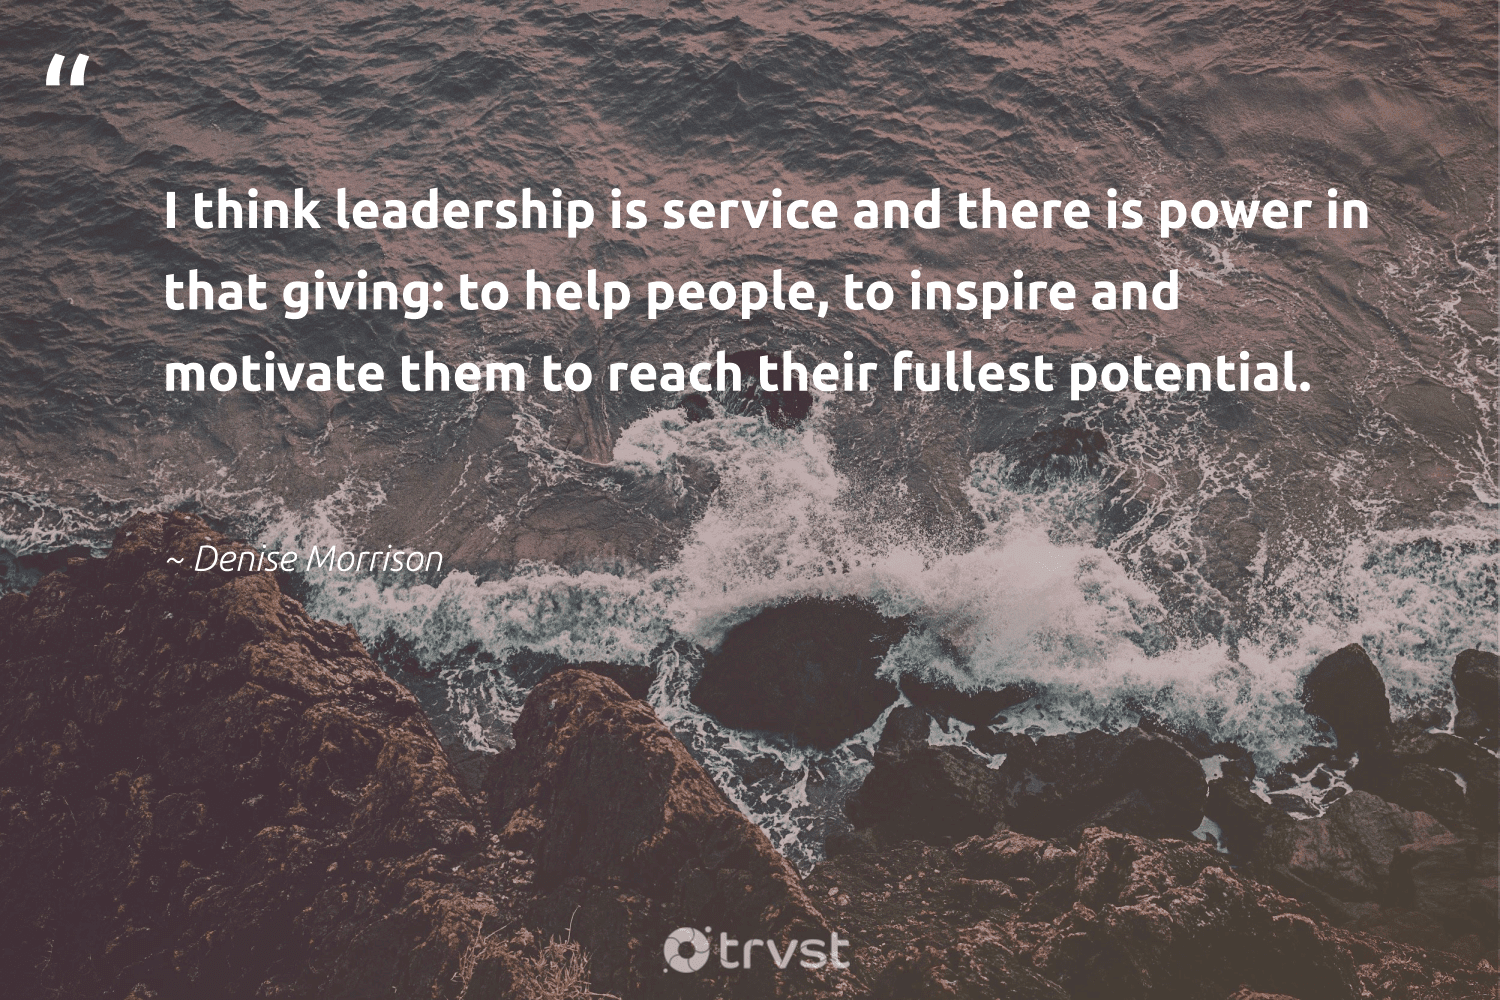 """""""I think leadership is service and there is power in that giving: to help people, to inspire and motivate them to reach their fullest potential.""""  - Denise Morrison #trvst #quotes #leadership #leadershipskills #nevergiveup #begreat #beinspired #leadershipdevelopment #futureofwork #softskills #dosomething #leadershipqualities"""